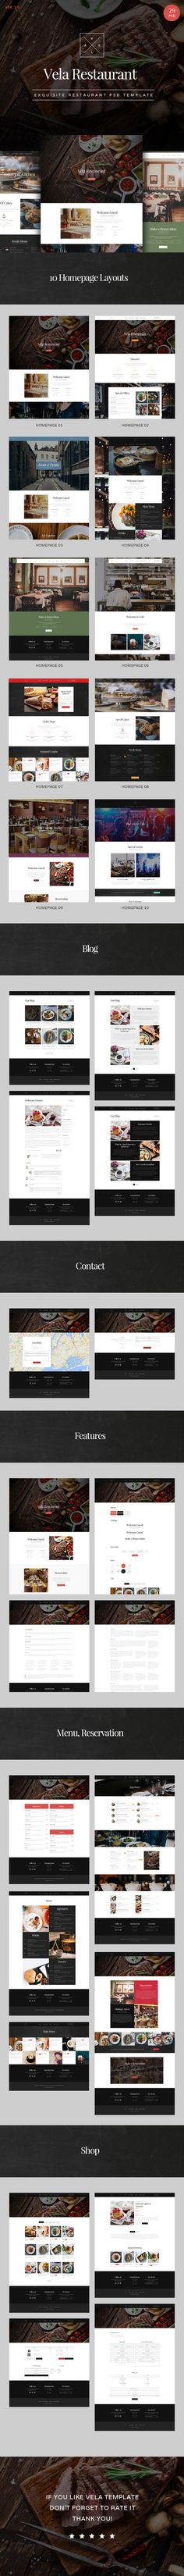 Vela is PSD theme for restaurant website with blogpost page. It is designed to be suitable with all types of restaurant. With the elegant and modern design, Vela will bring your store the professional and attractive look. Everything is clear and easy to customize when it is organized in set PSD files.   Link: http://themeforest.net/item/vela-exquisite-restaurant-psd-template/10610810